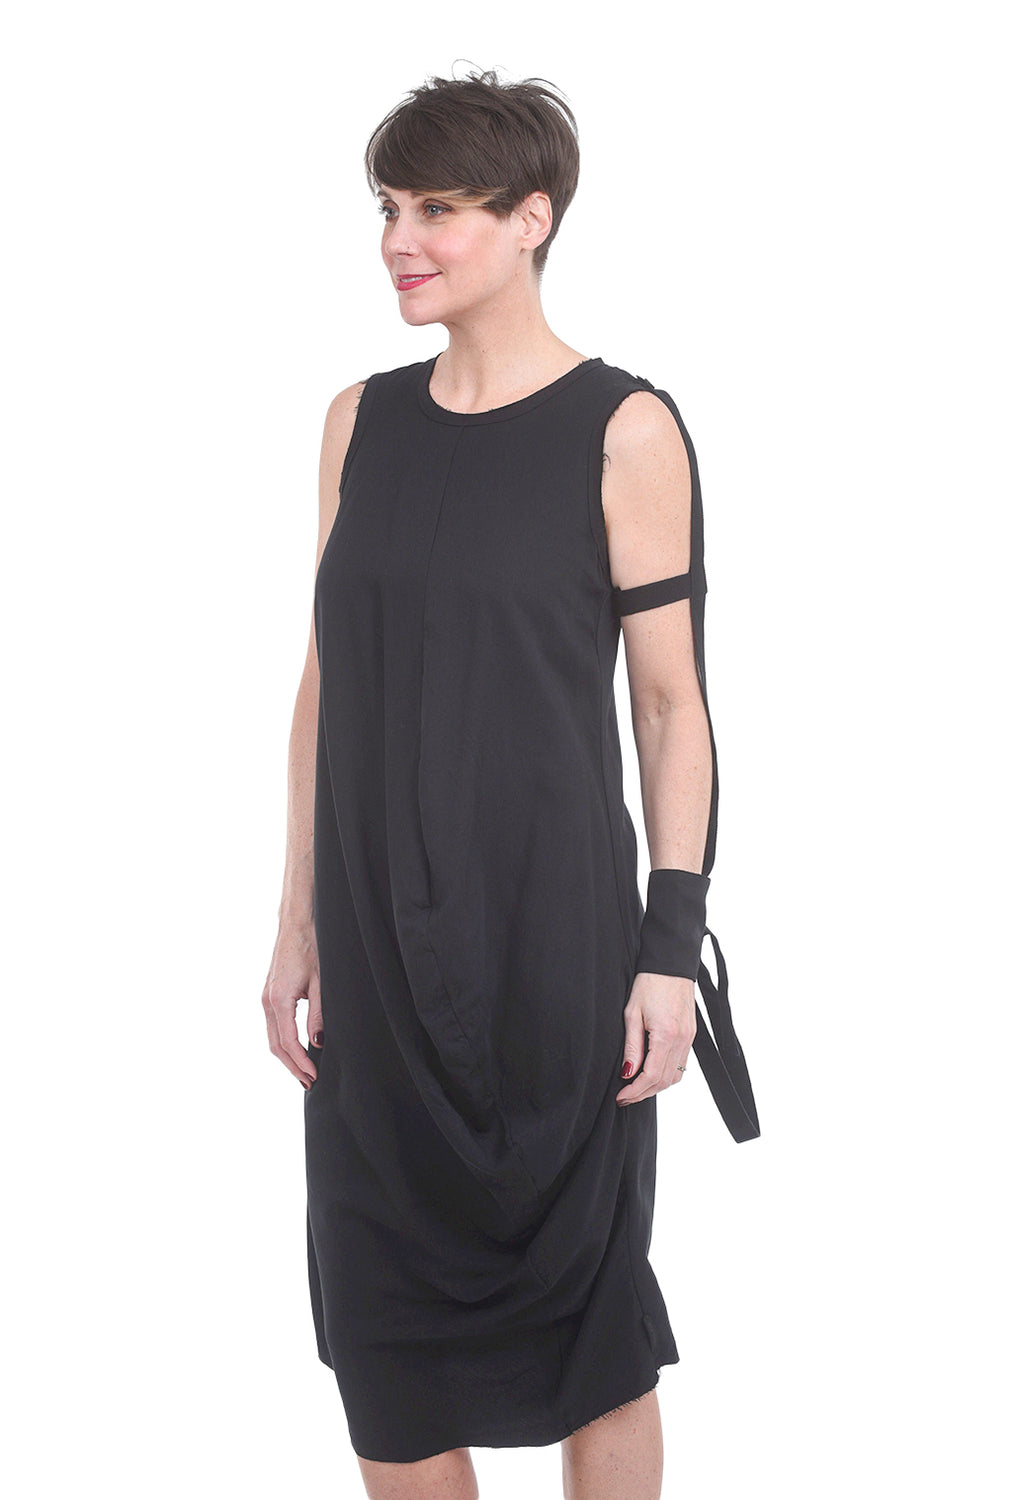 Studio B3 Falesia Dress, Black